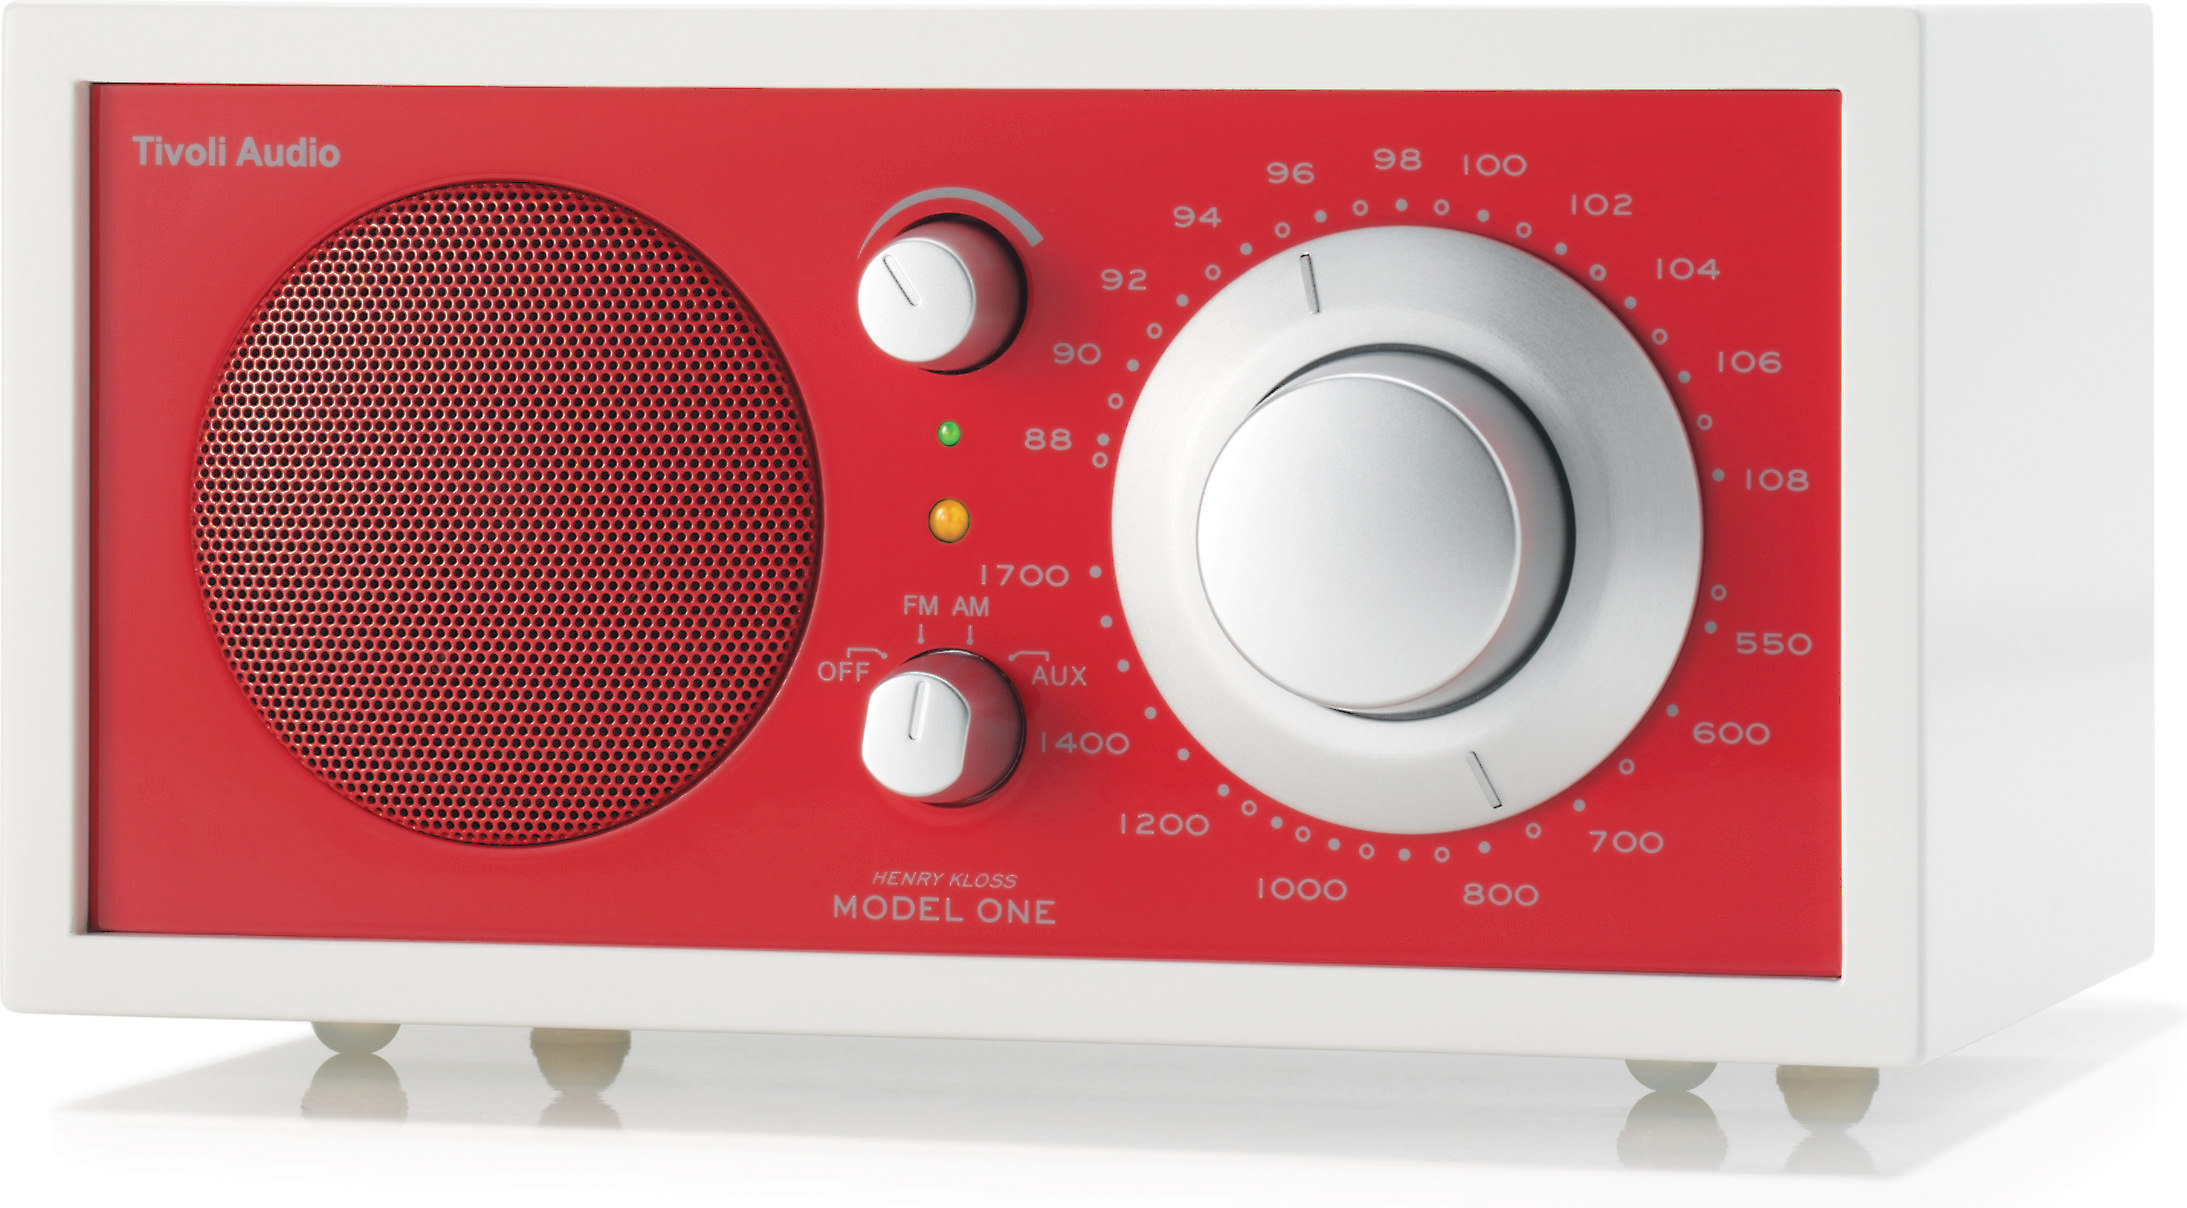 Tivoli Audio Networks Manual Tivoli Audio Frost White Model One Frost White And Red